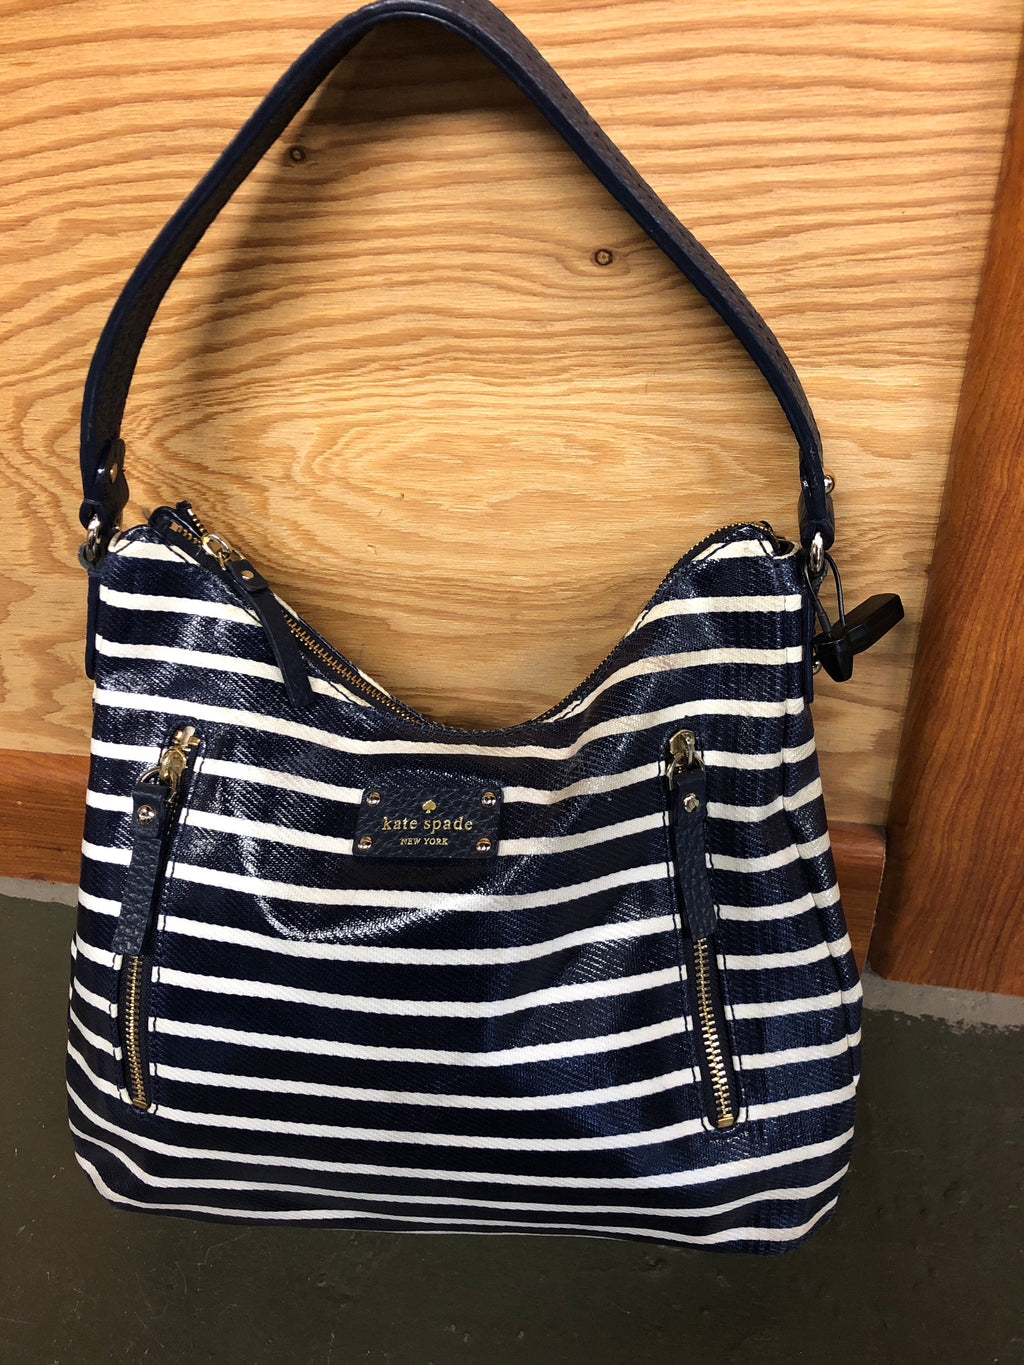 Kate Spade Navy & White Bag